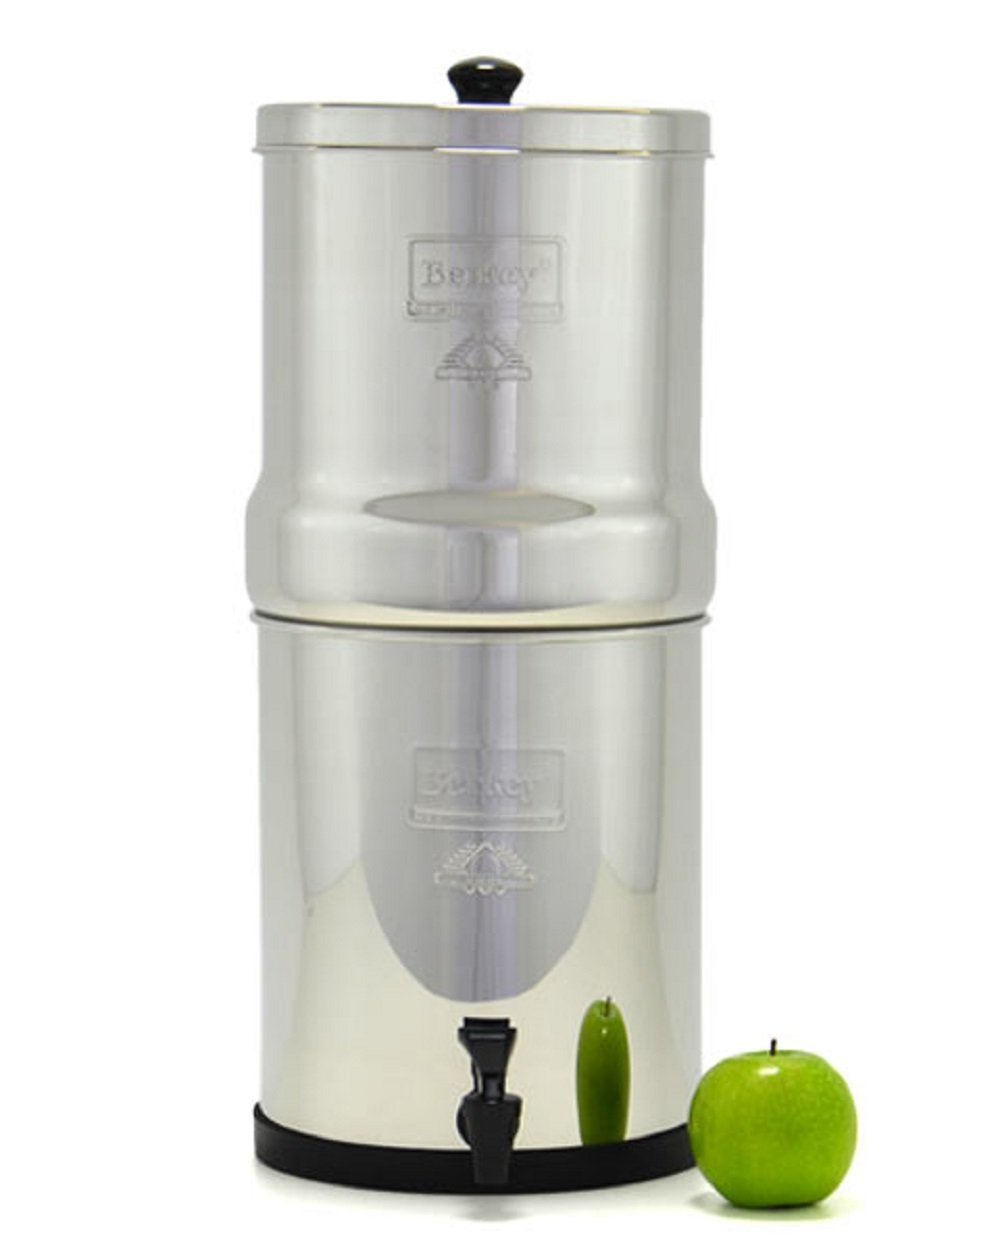 Big Water Filter Systems Berkey Water Filter System With 2 Black Berkey Elements And Berkey